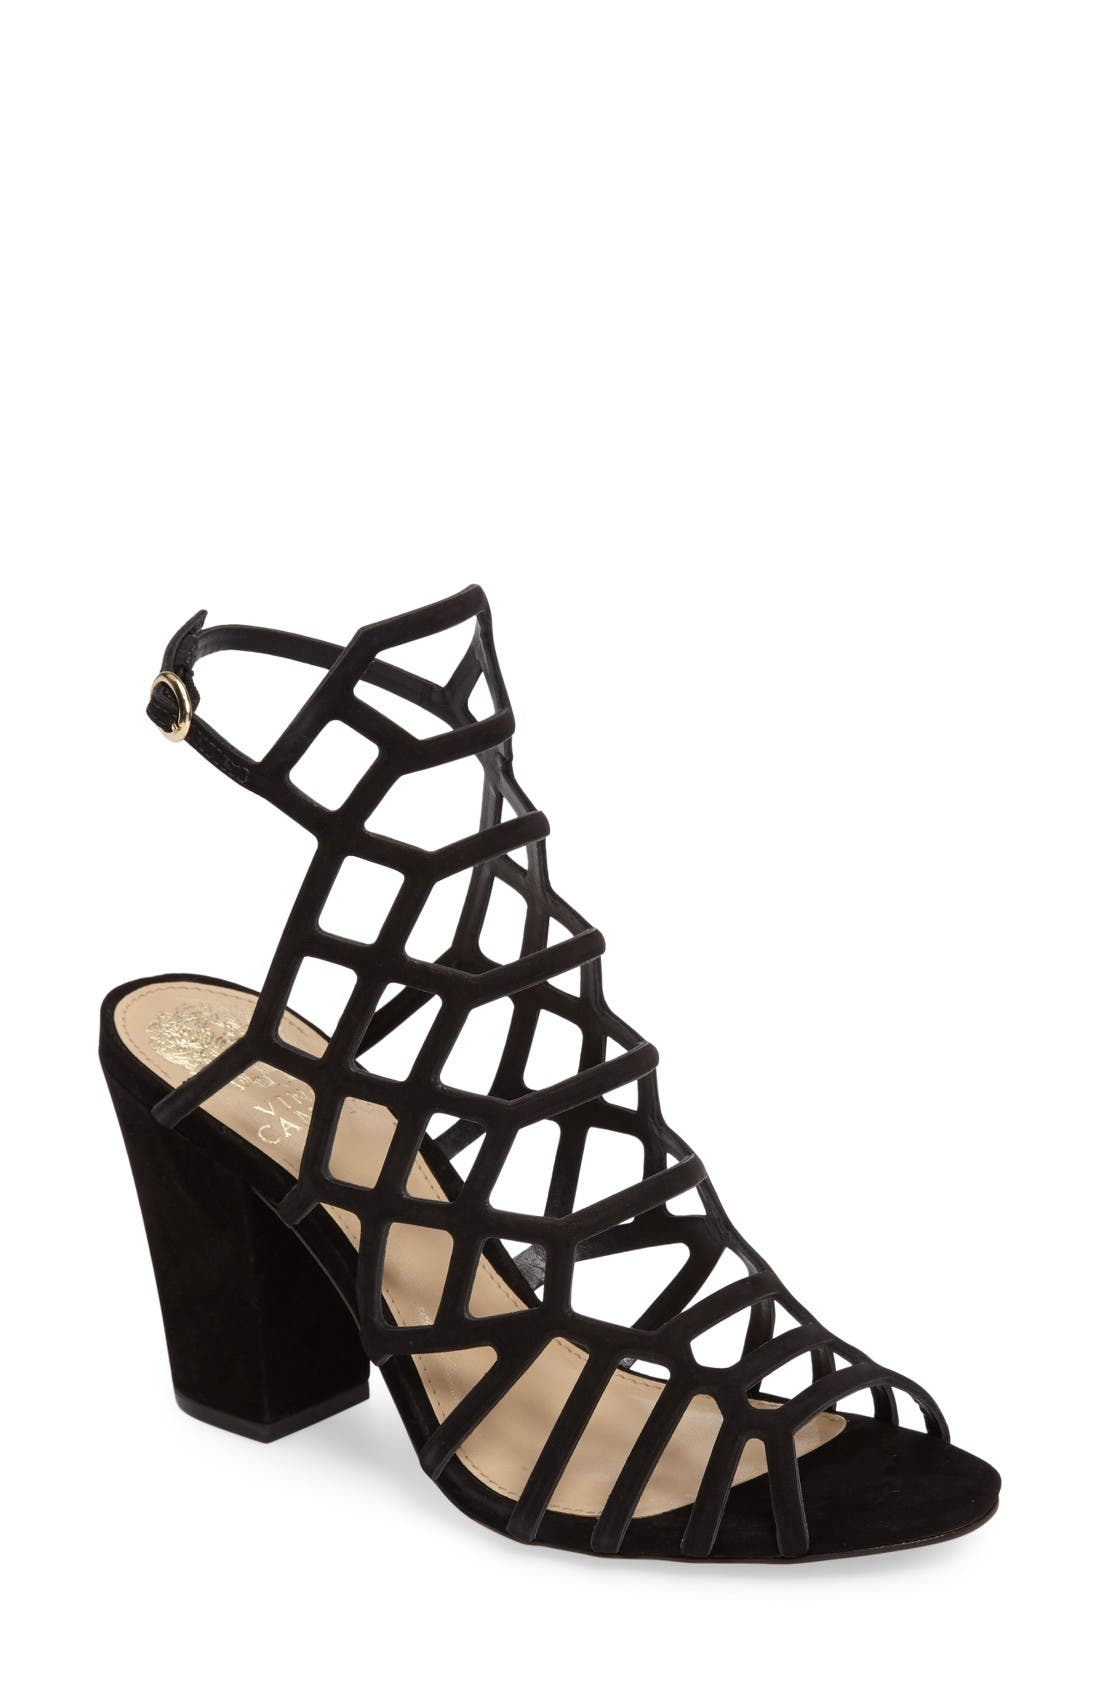 Main Image - Vince Camuto Naveen Cage Sandal (Women)